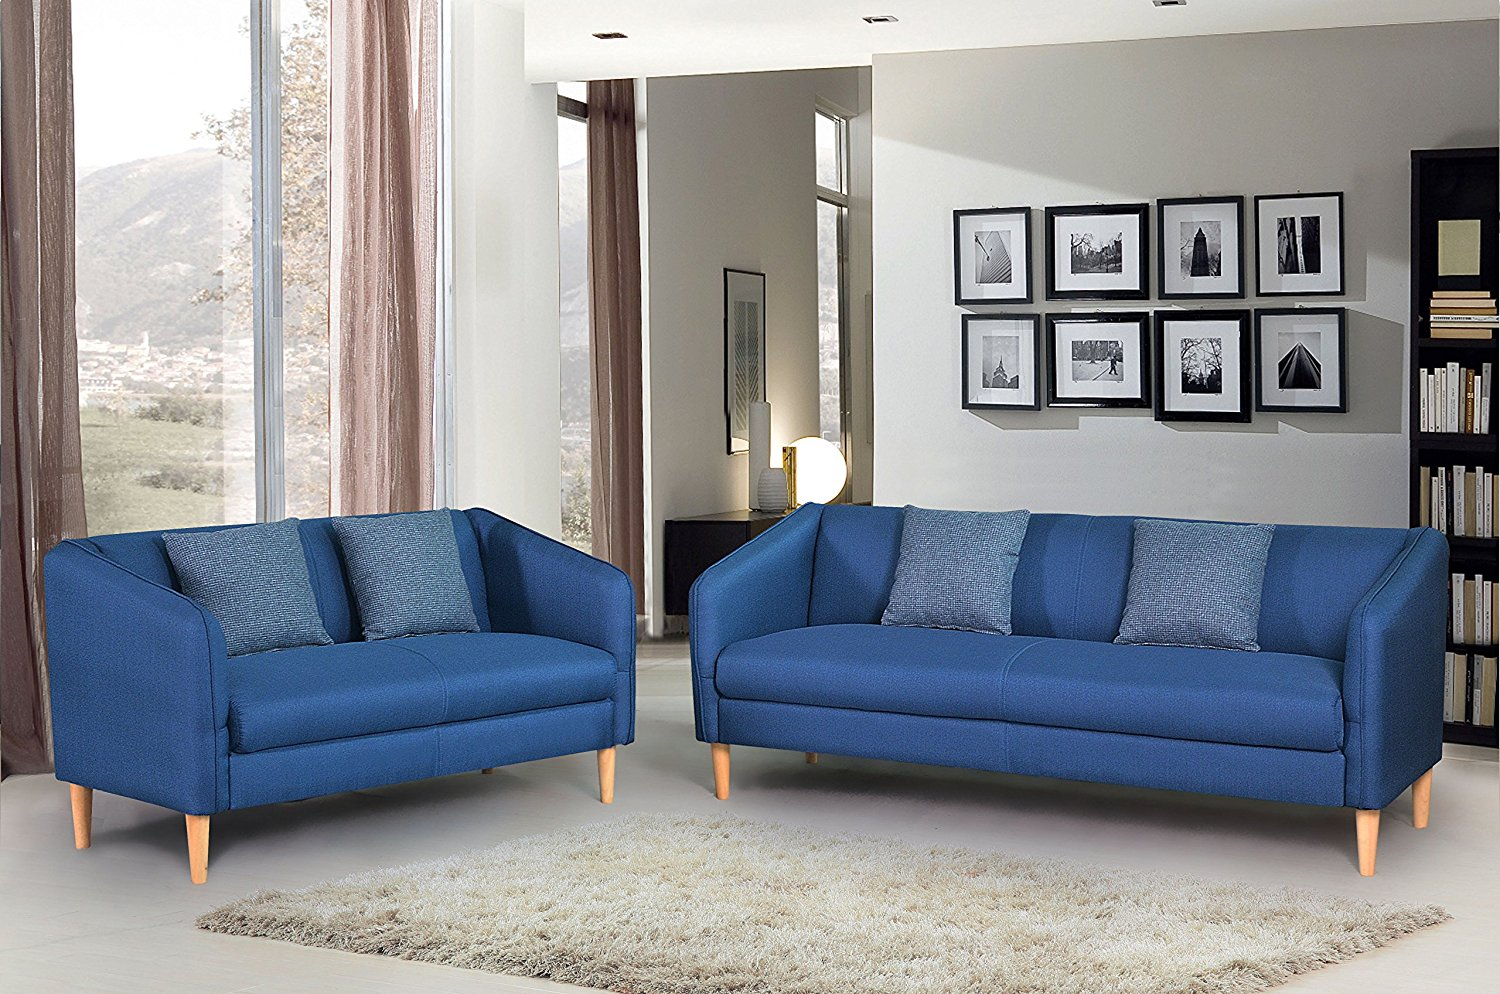 Container Furniture Direct Helton Collection 2 Piece Collection Modern Reversible Fabric Living Room Sofa Set, Blue